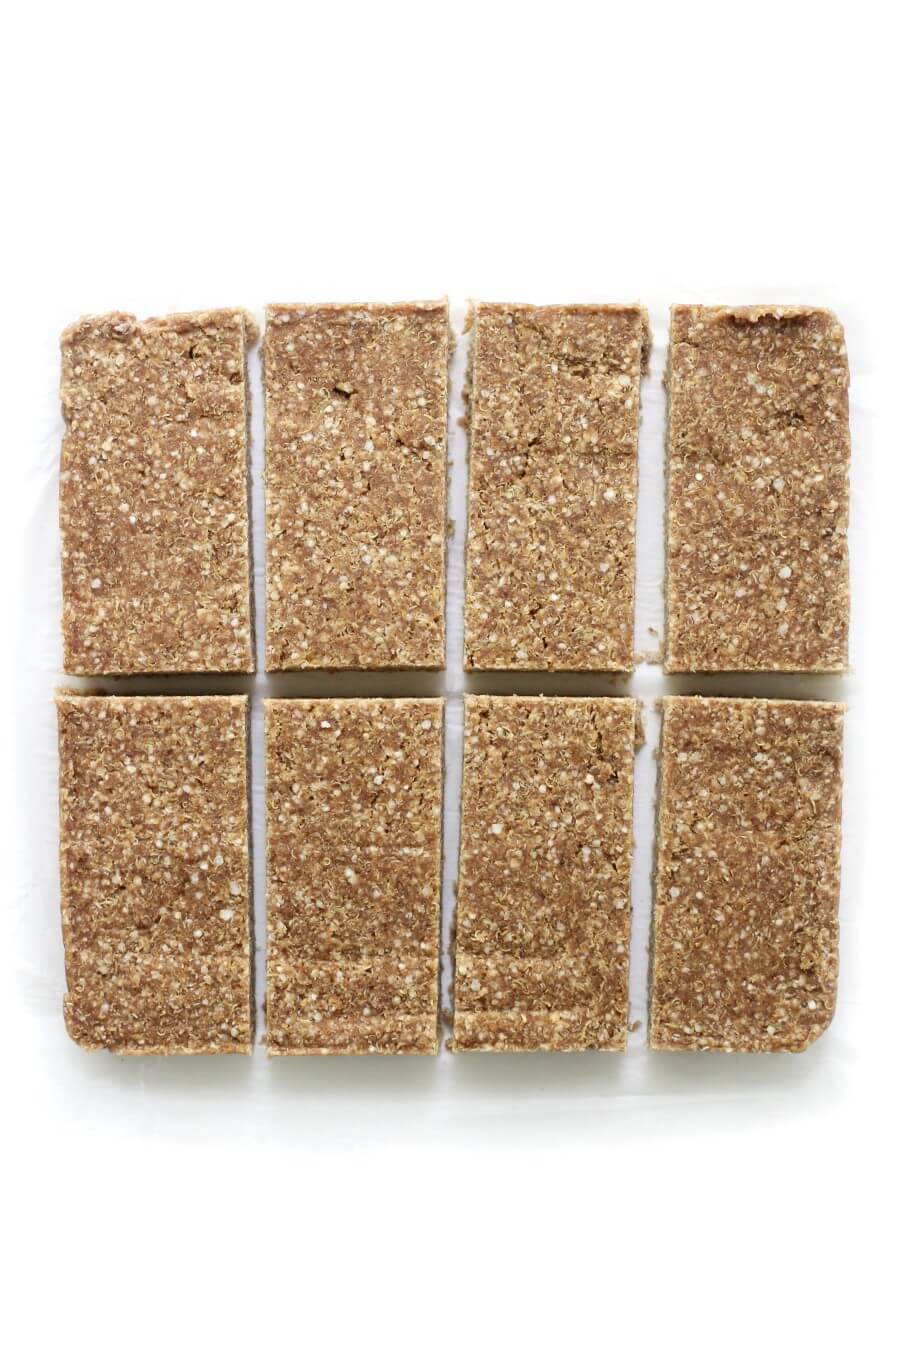 overhead view of 8 cut oat-free no-bake granola bars